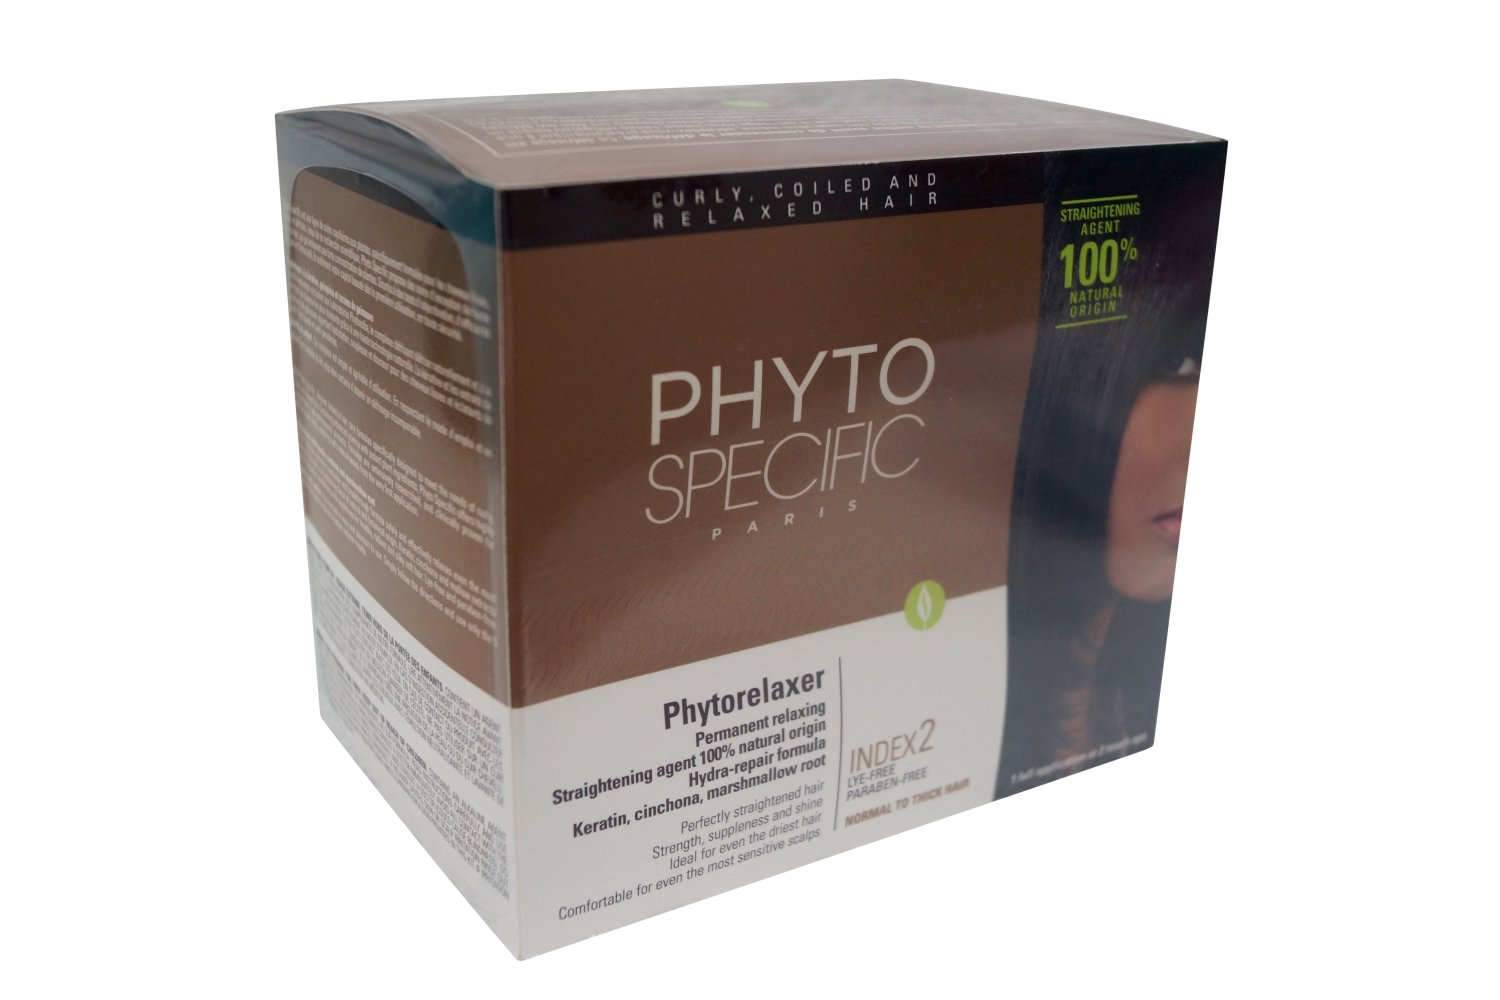 PHYTO SPECIFIC Phytorelaxer Index 2 Normal to Thick Hair